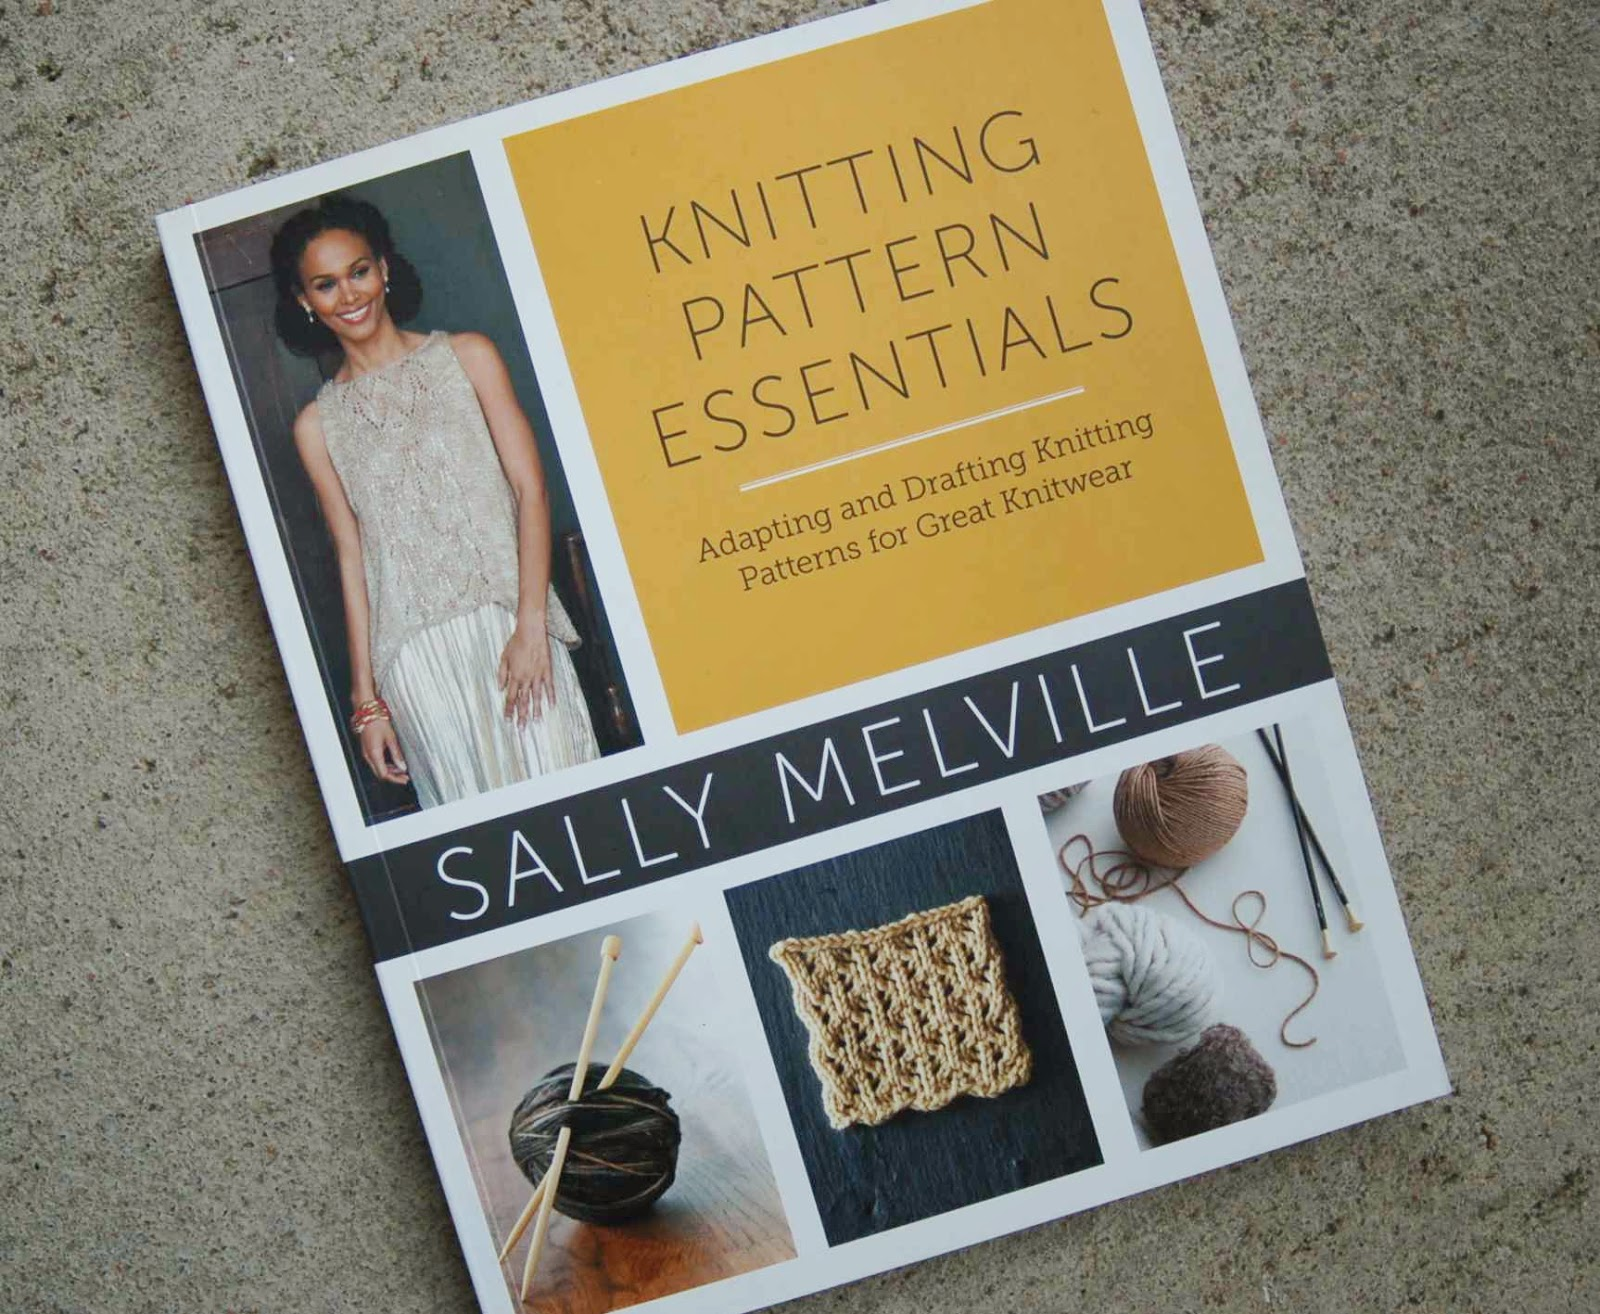 Knitting Pattern Essentials By Sally Melville : Knitaway